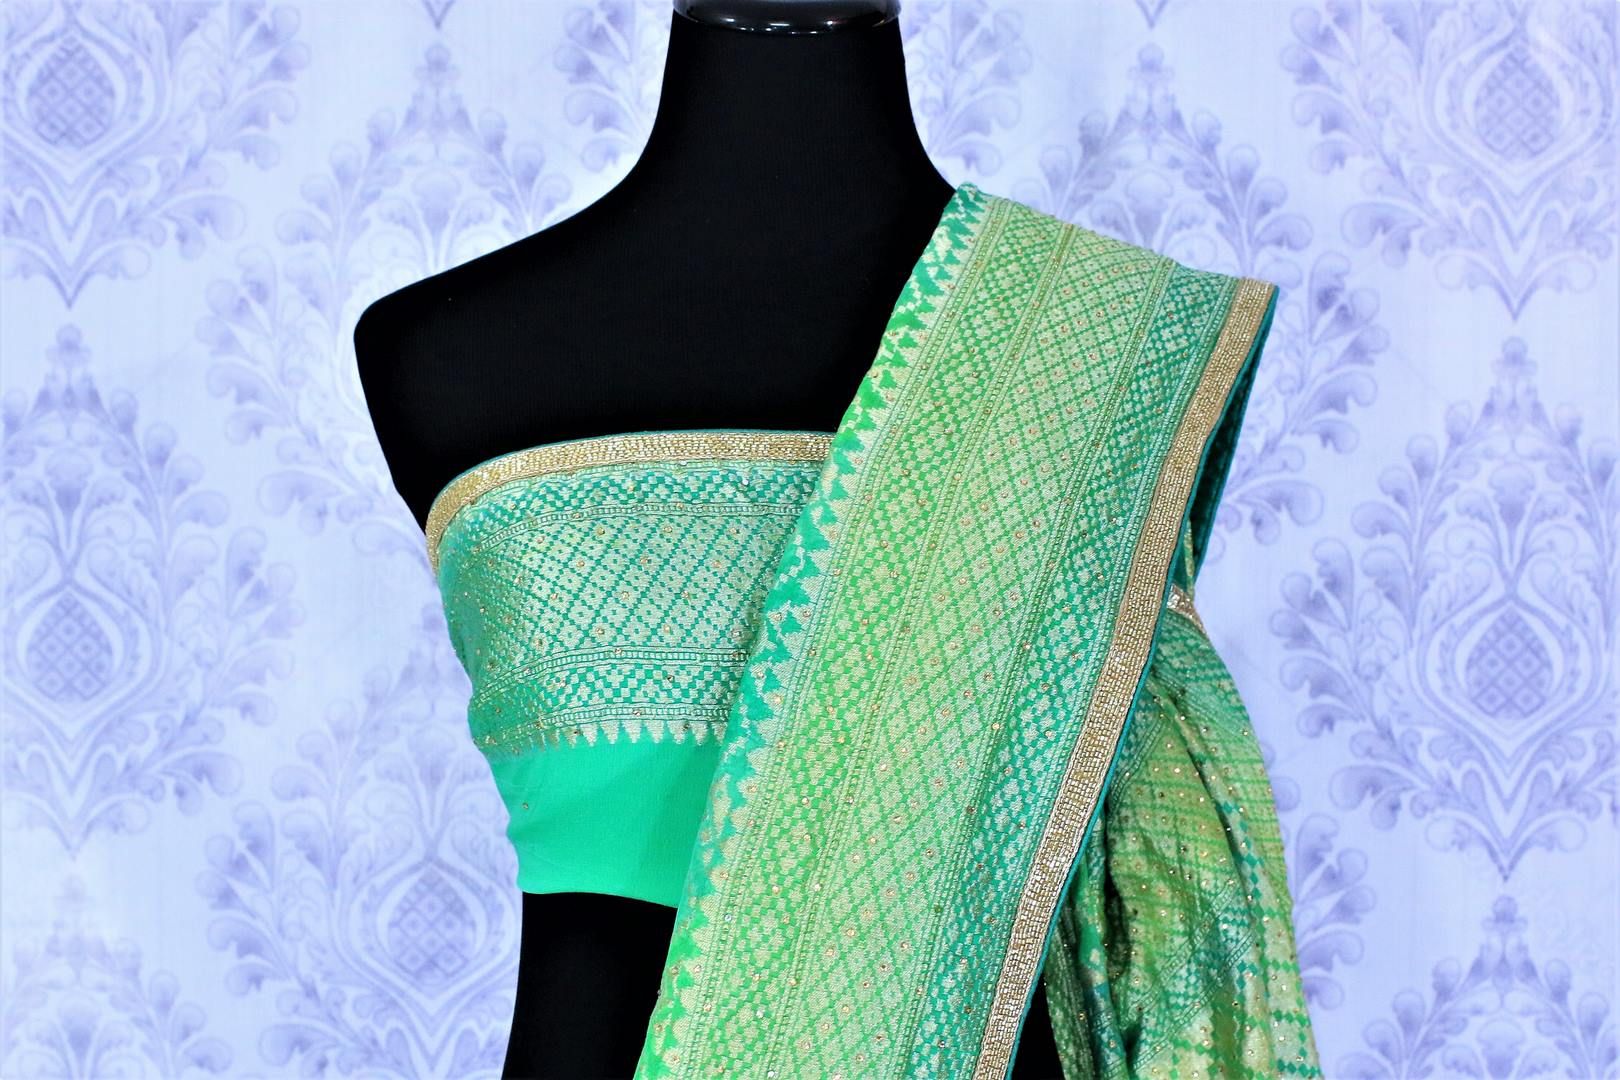 Beautiful green khaddi Banarasi georgette saree buy online in USA. The saree is a perfect choice for a traditional look at special occasions. Buy more such Indian designer saris in USA at Pure Elegance exclusive fashion store or shop online at the comfort of your home.-blouse pallu